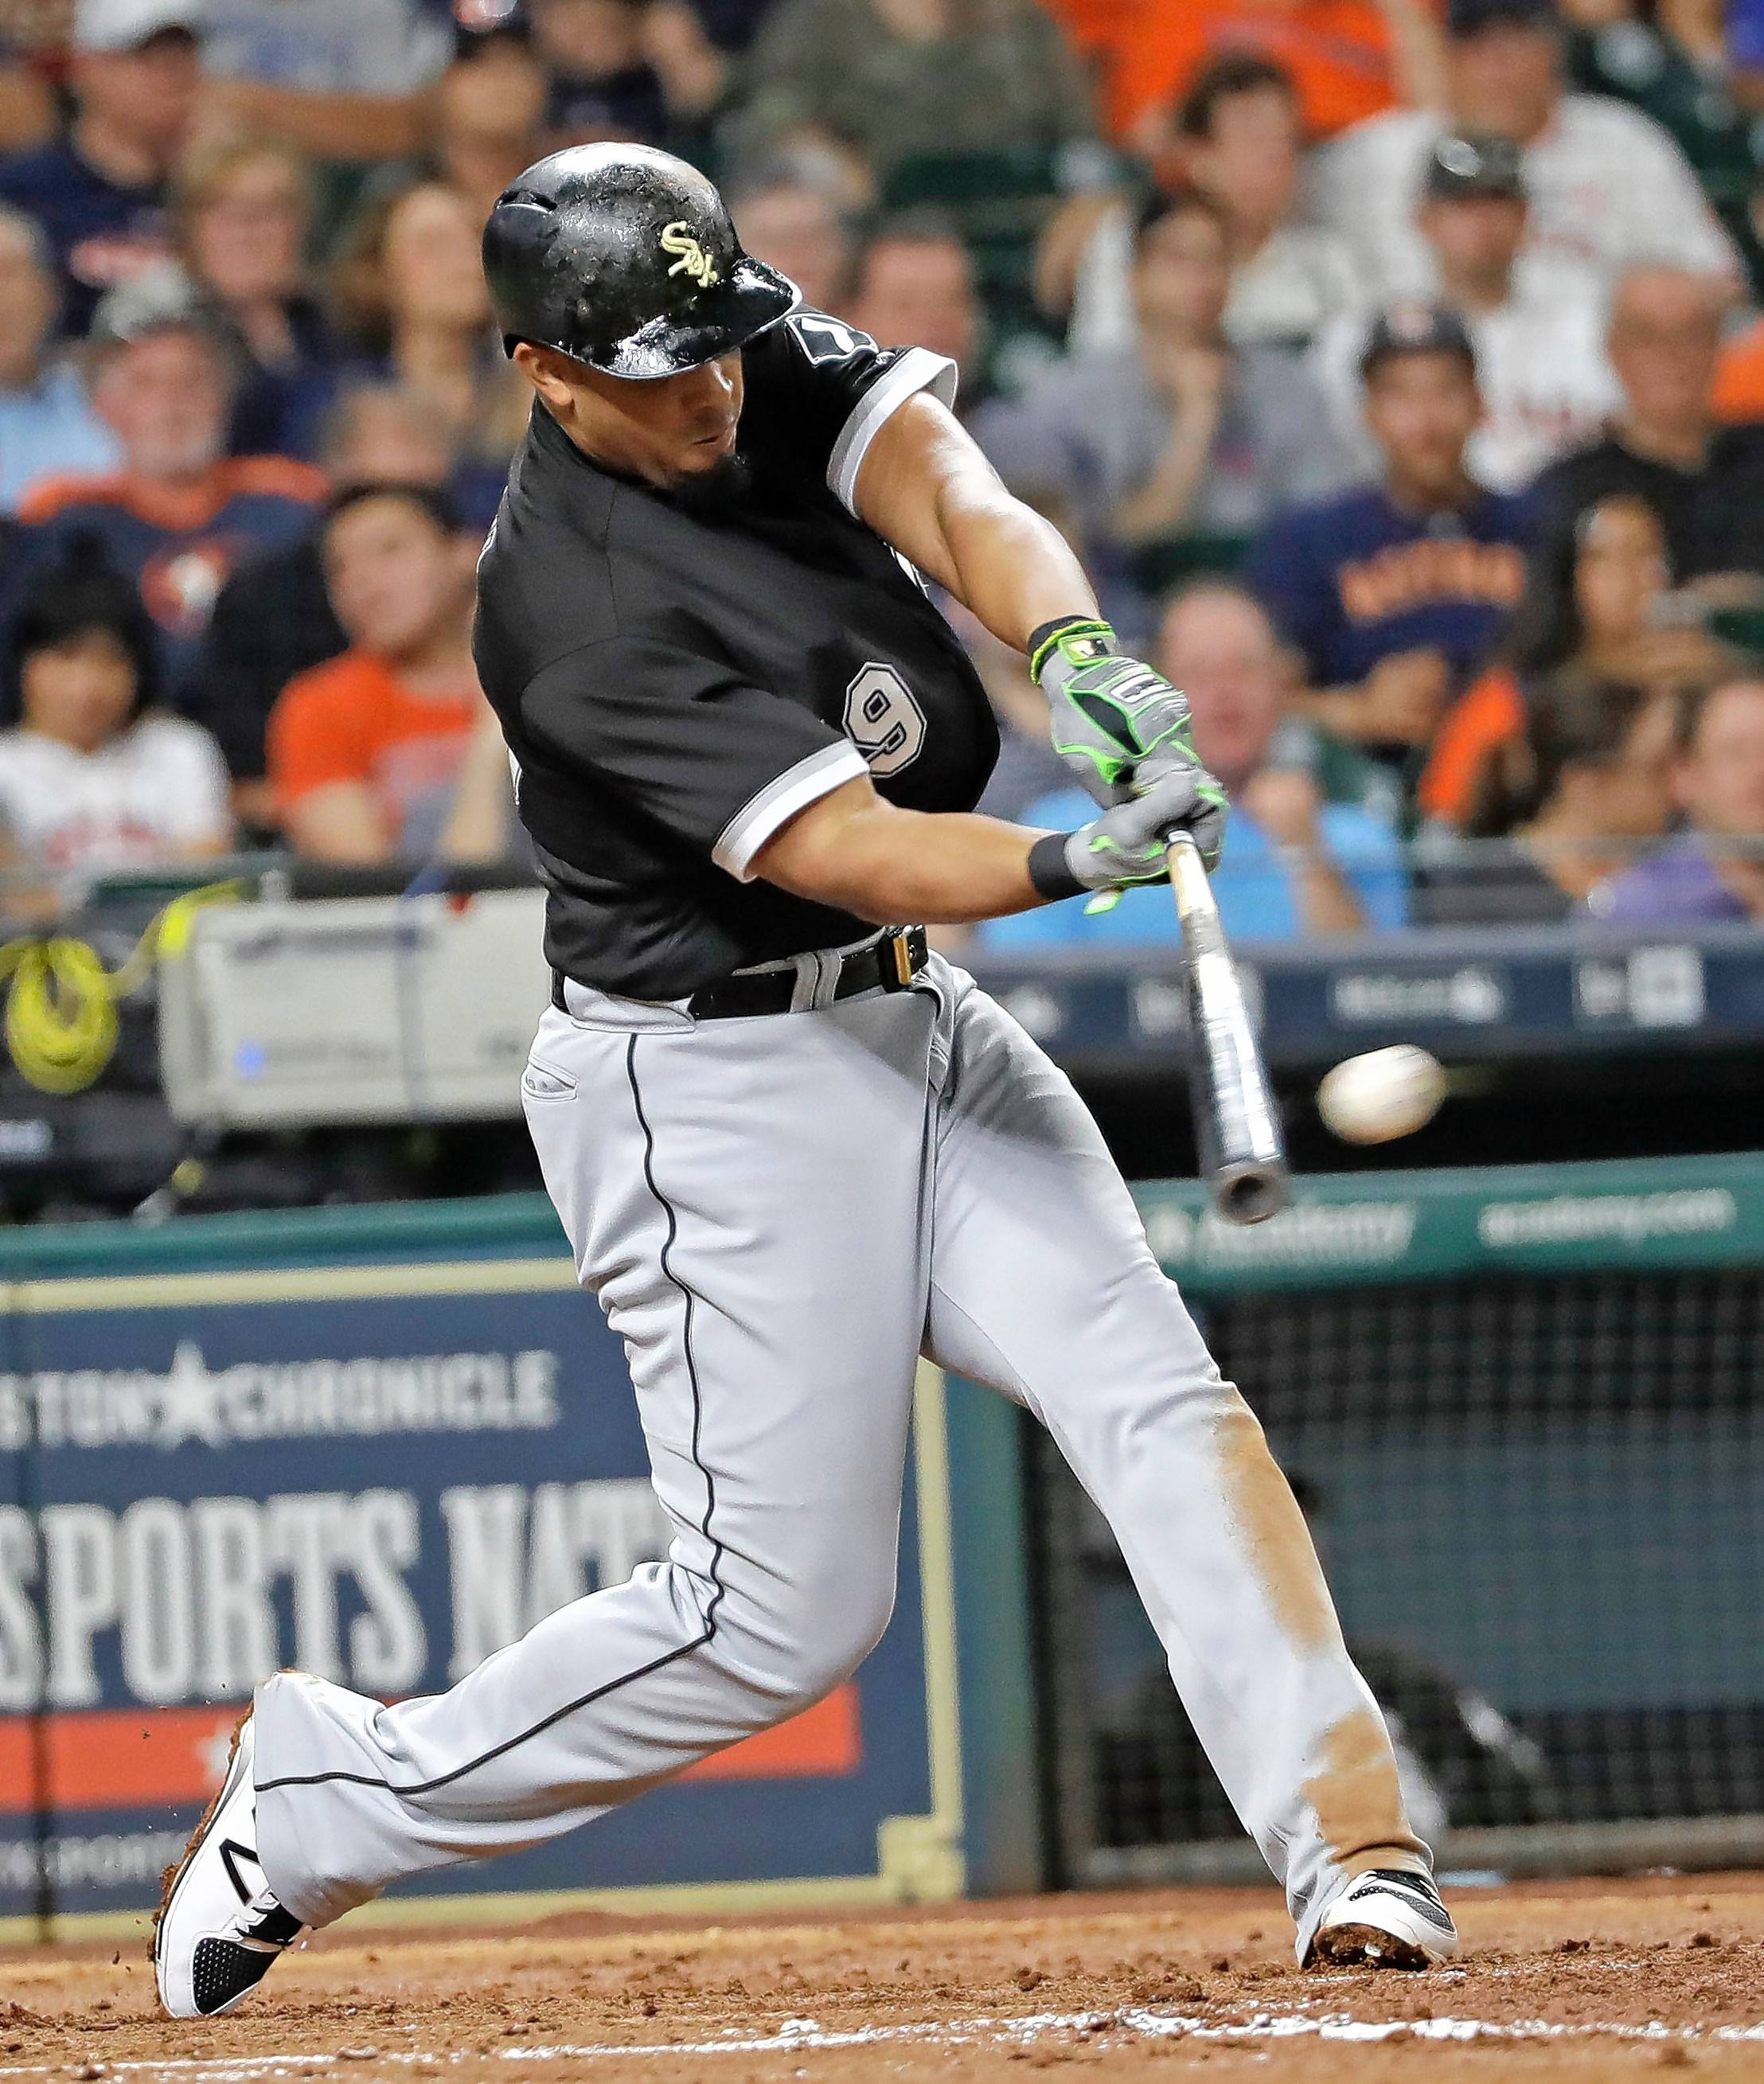 Jose Abreu has been the best hitter on the Chicago White Sox since he arrived from Cubs before the 2014 season.